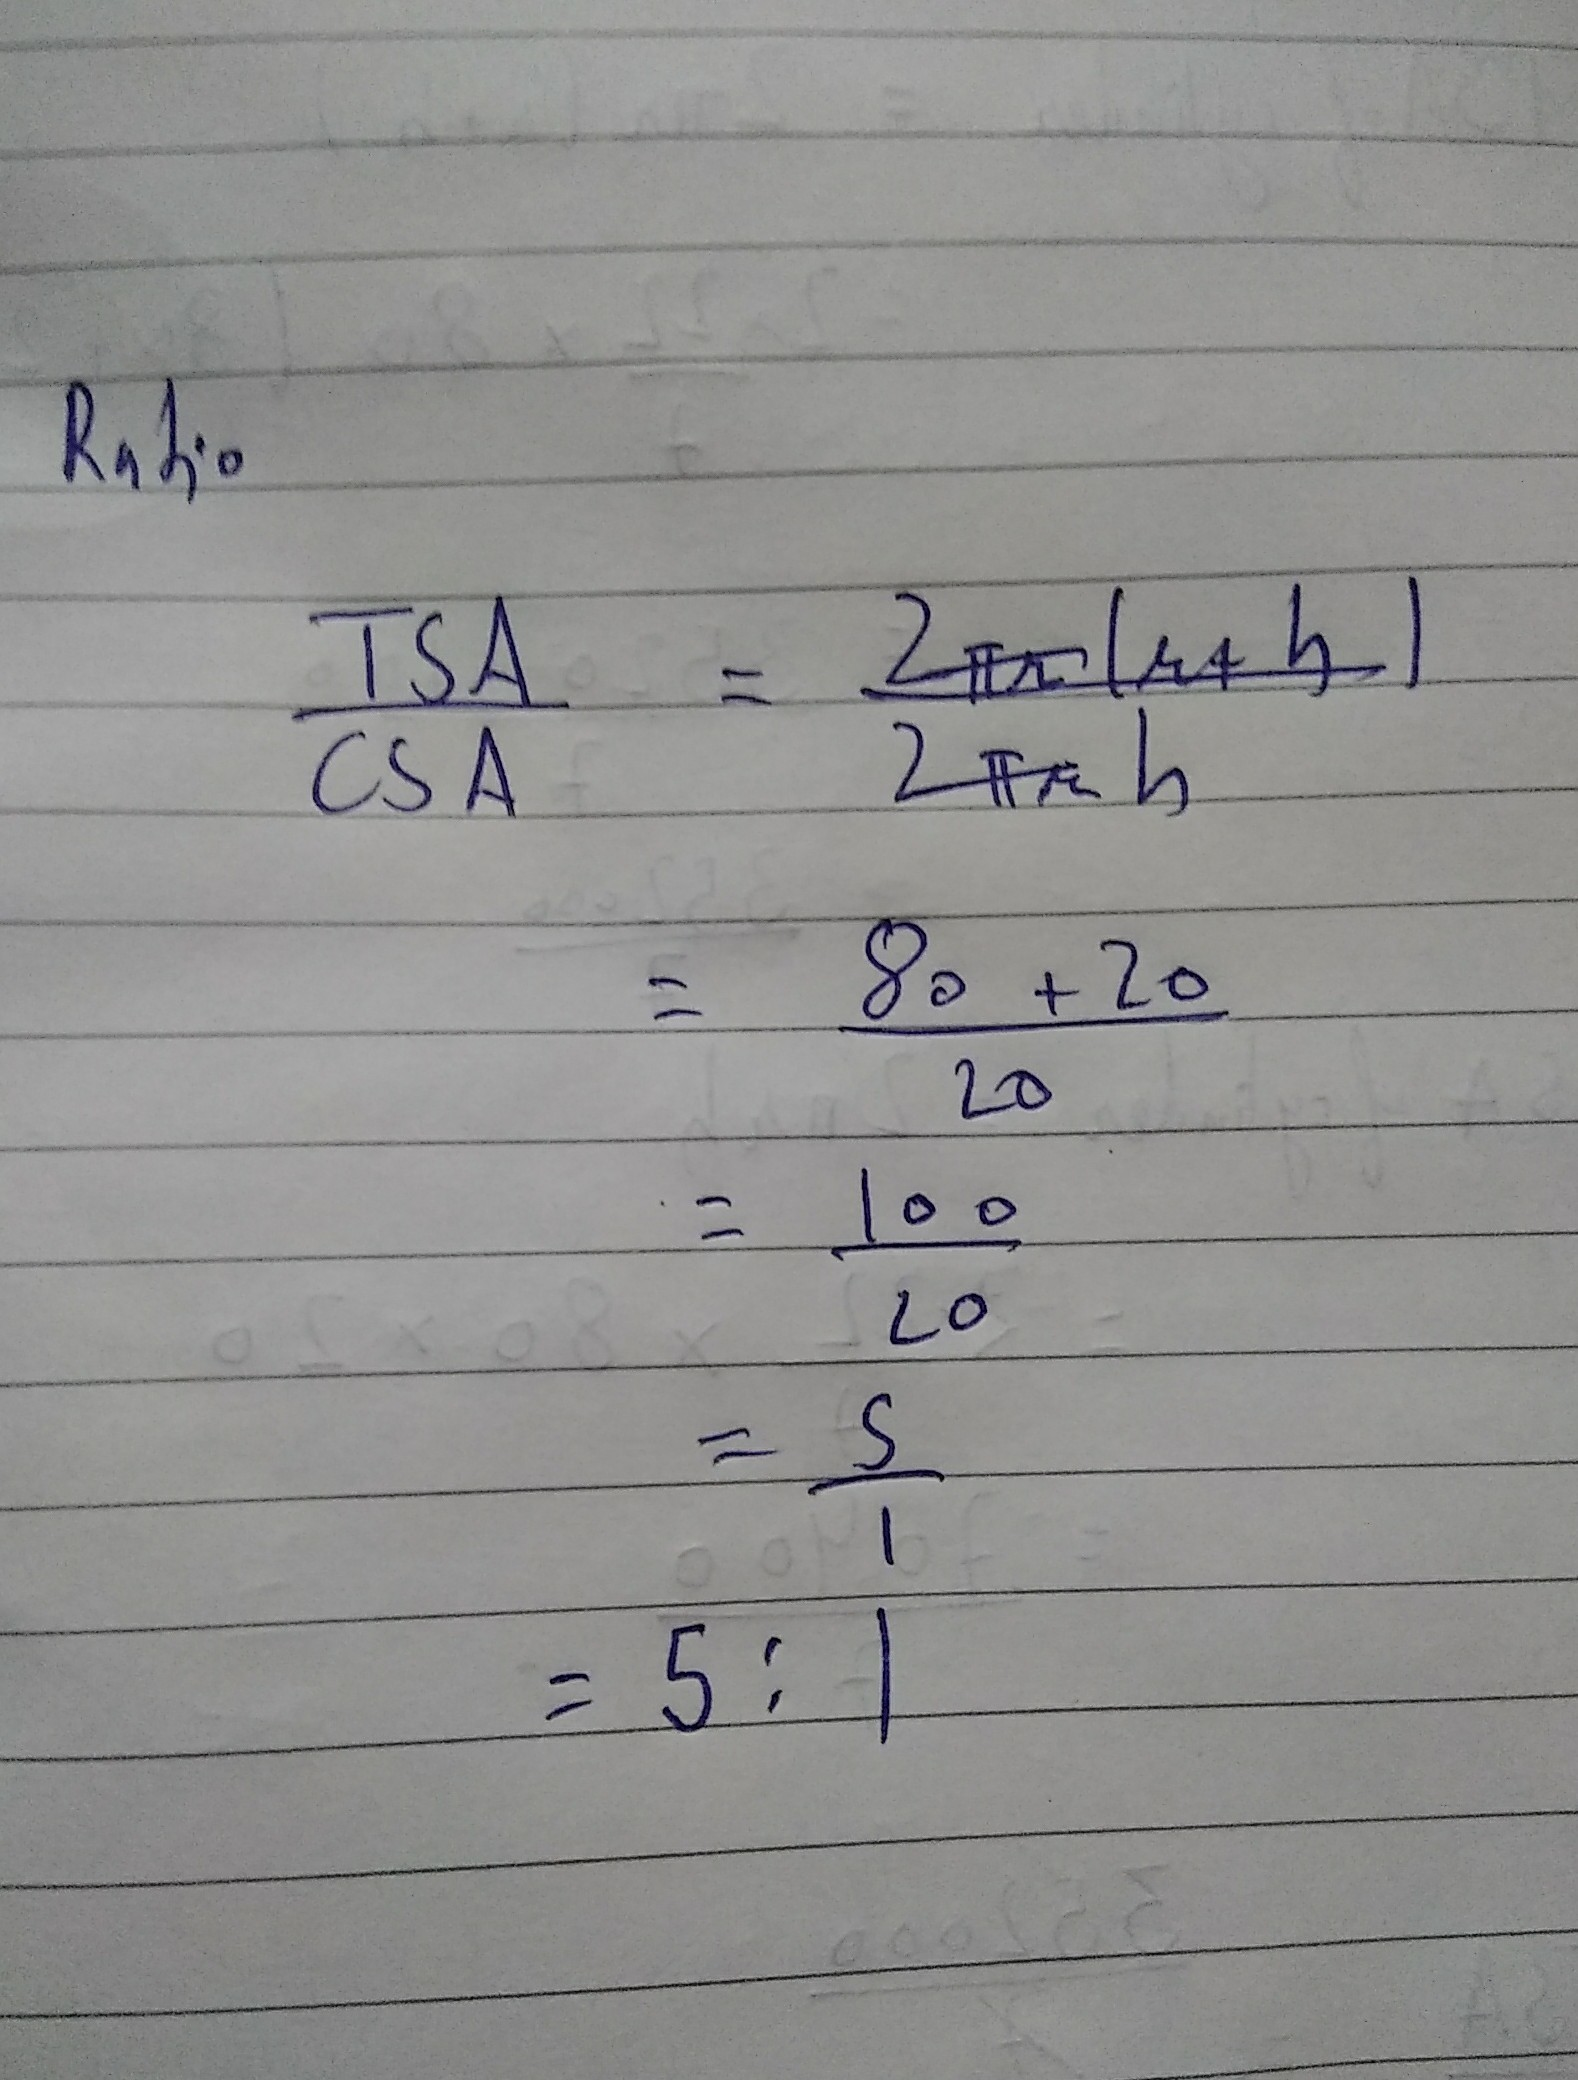 The Ratio Of Total Surface Area To Lateral Surface Area Of